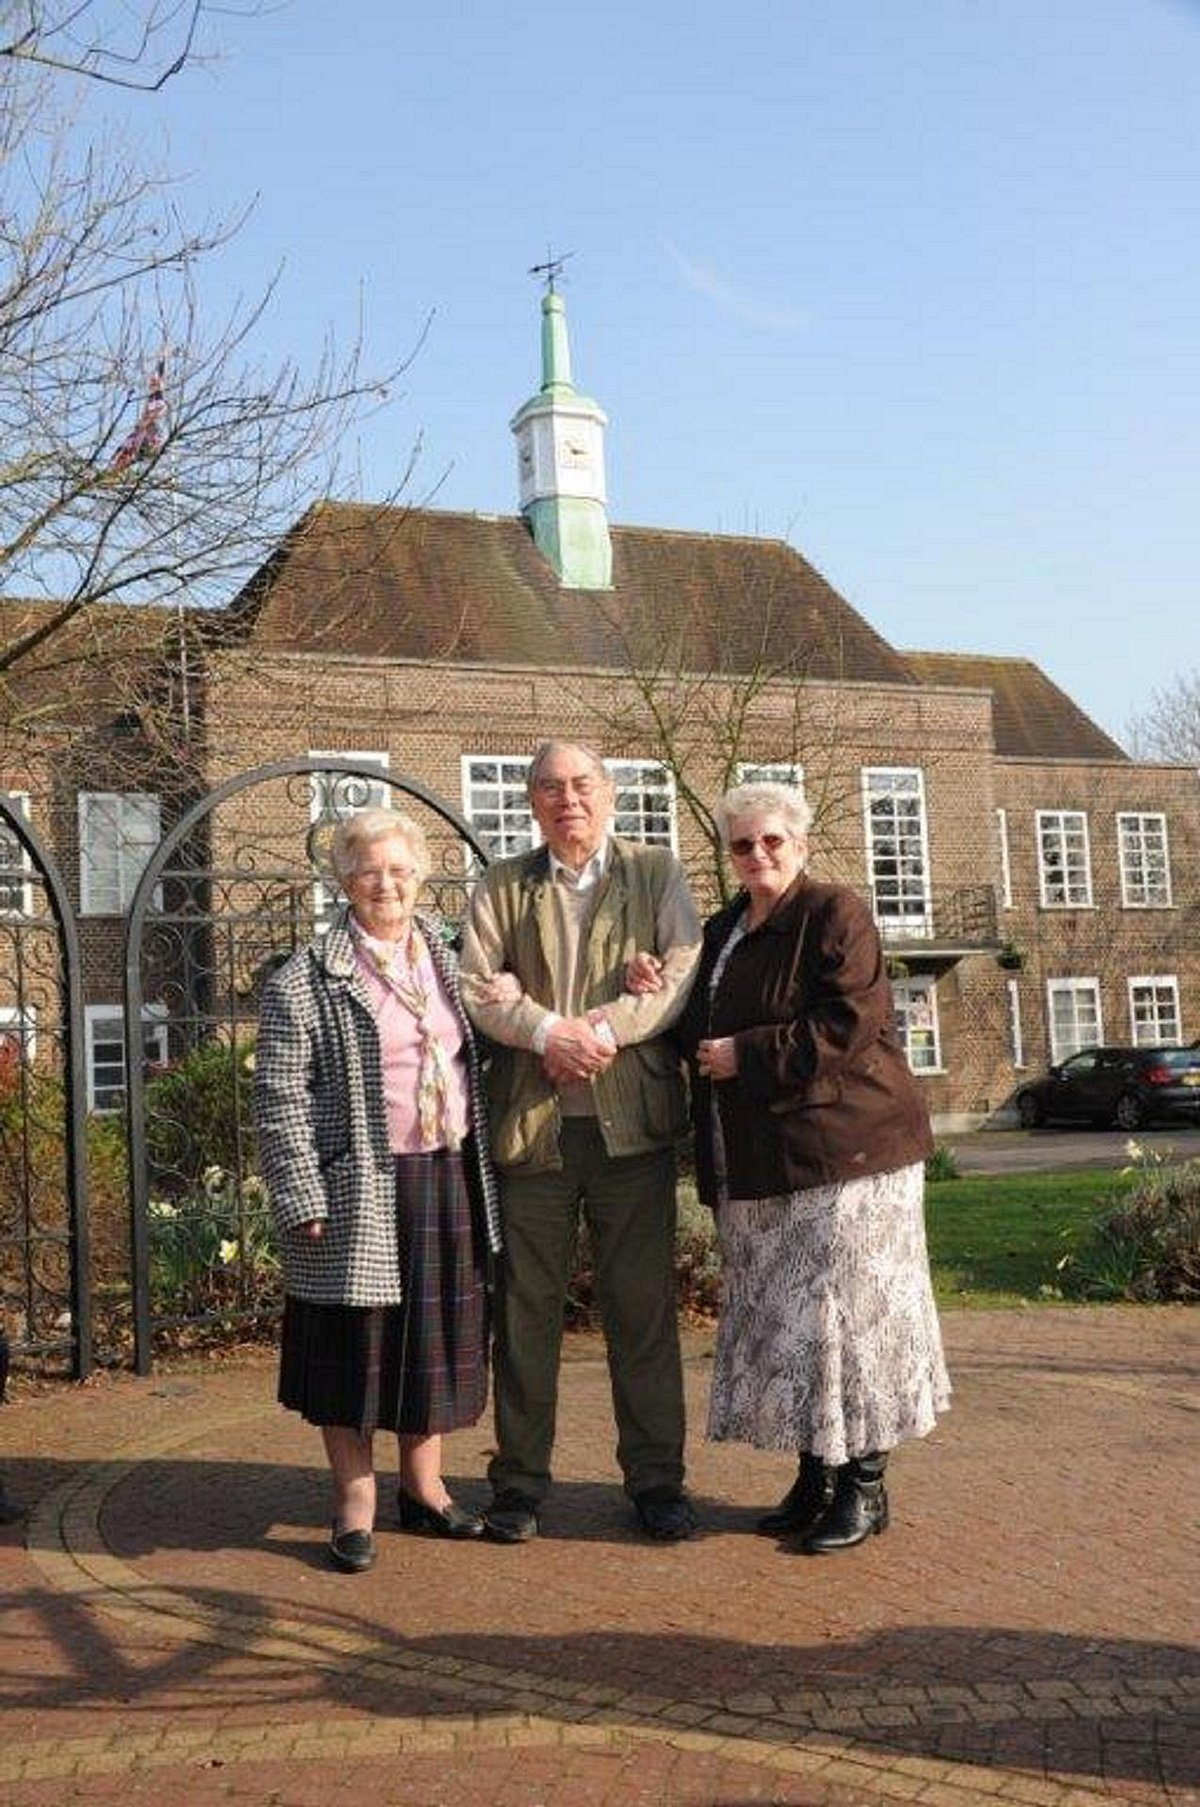 Hazel Bird (right) with town crier Dick Smith (centre) and Daphne Rolphe, the daughter of the family who housed the family (left)